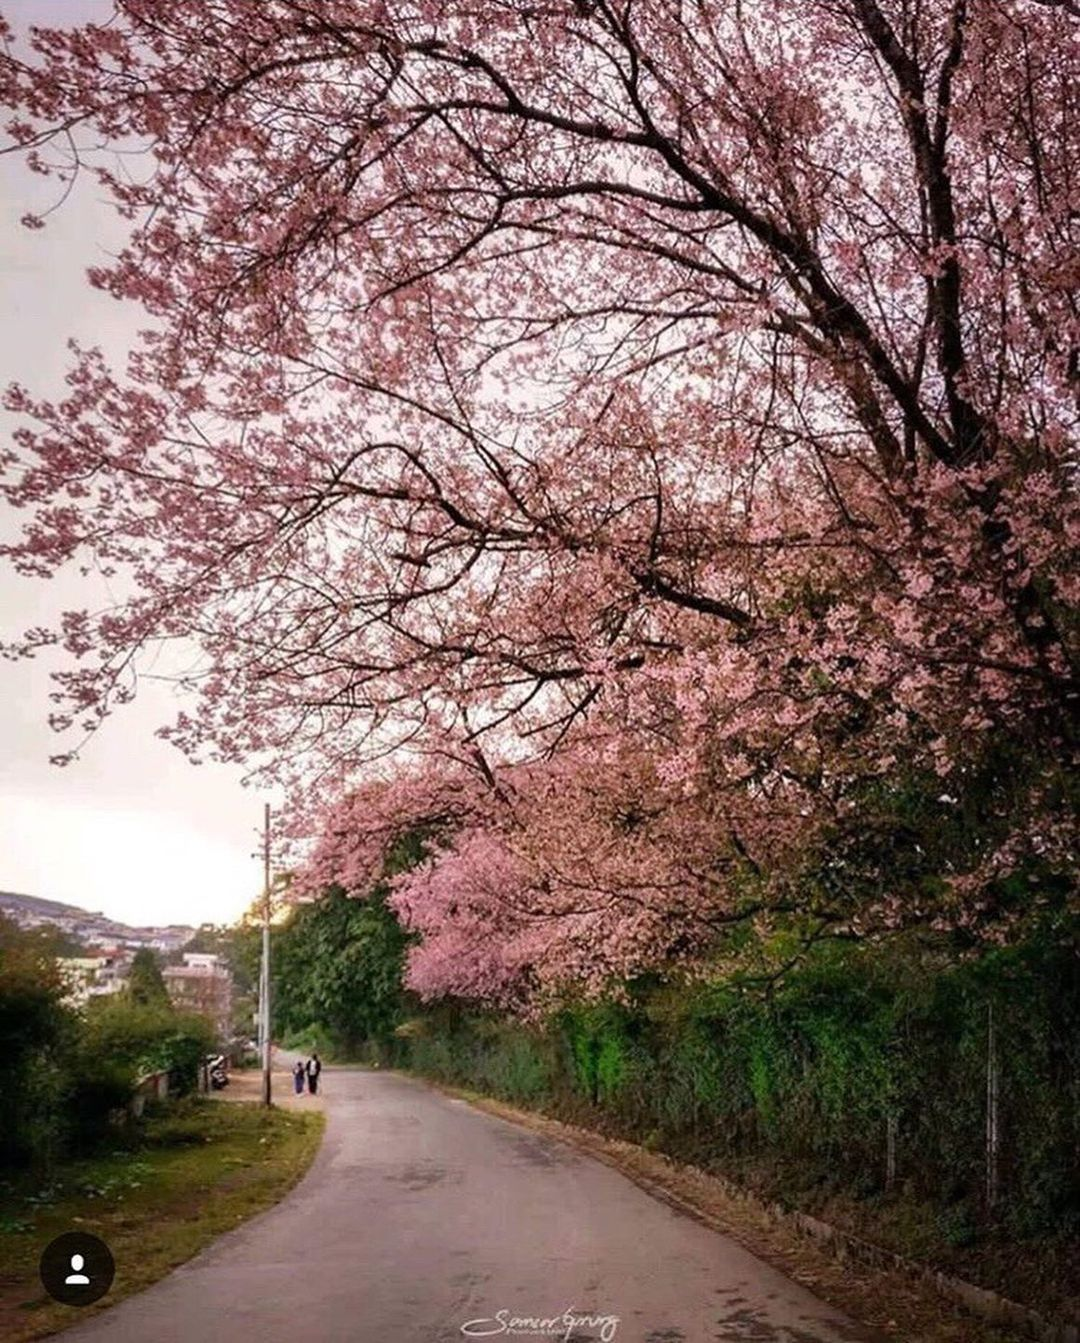 Momspresso On Instagram Photos Shillong Is Hosting Cherryblossomfestival This November And It Must Be On Your In 2021 Instagram Cherry Blossom Festival Shillong